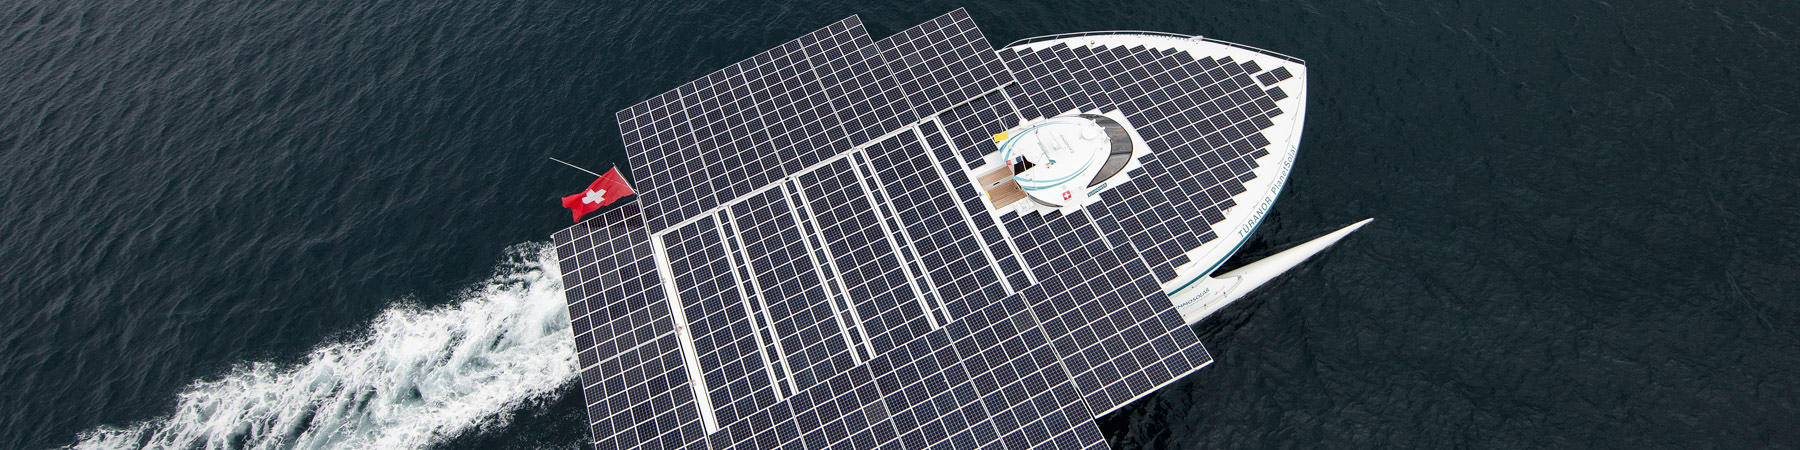 Le Tùranor Planetsolar - Photo Pêcheur d'Images